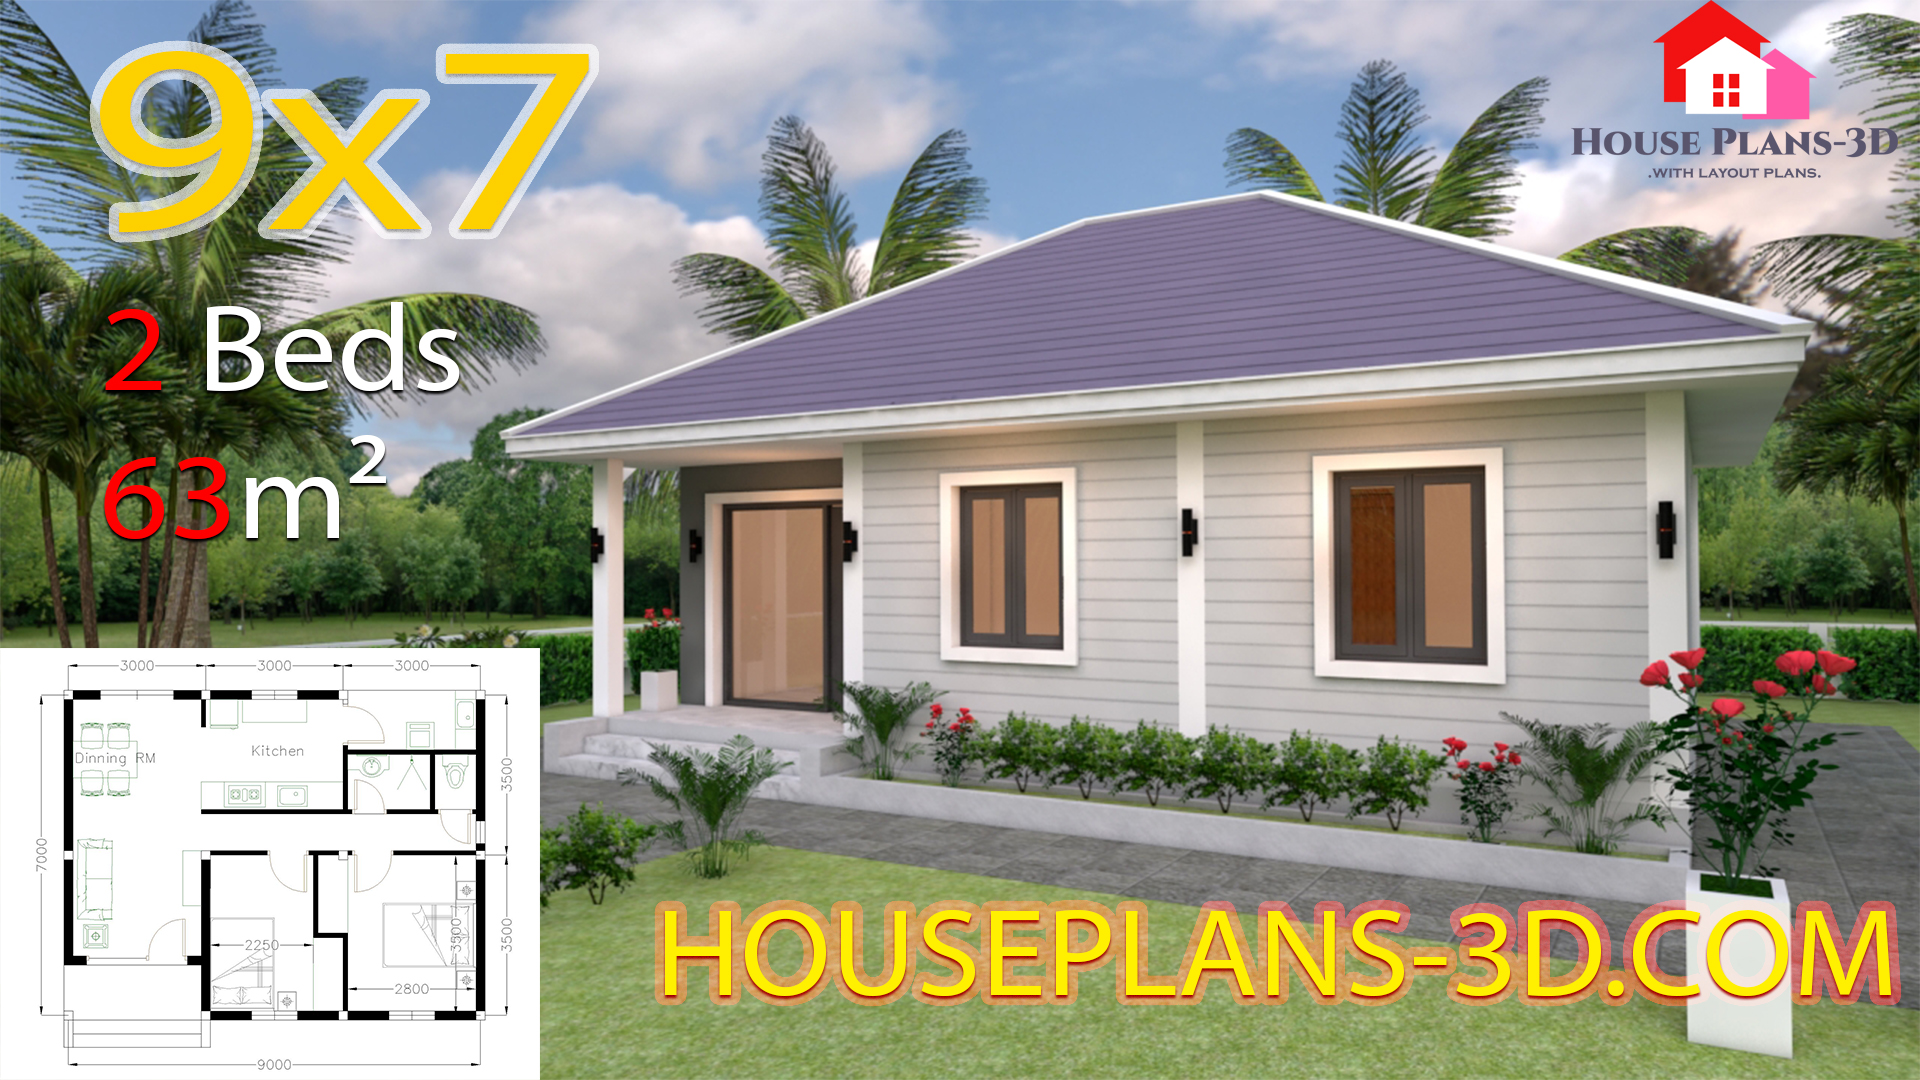 House Design Plans 9x7 with 2 Bedrooms Hip Roof - SamPhoas Plan